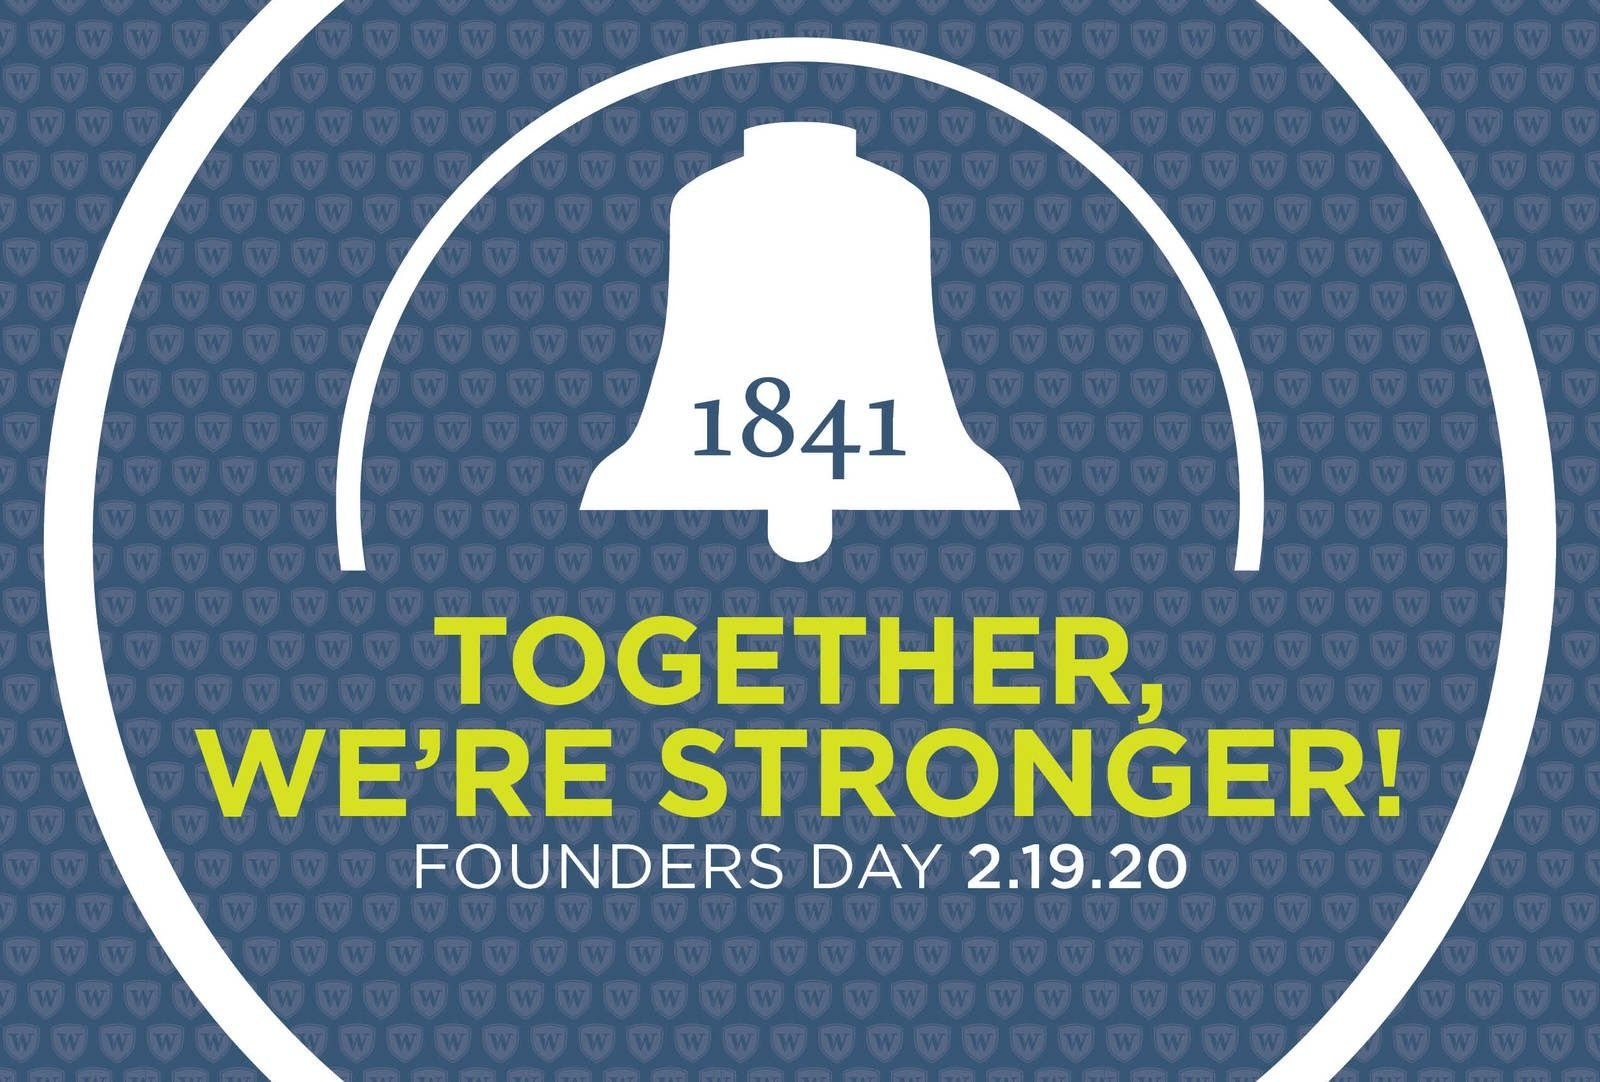 Image: Founders Day graphic with the bell